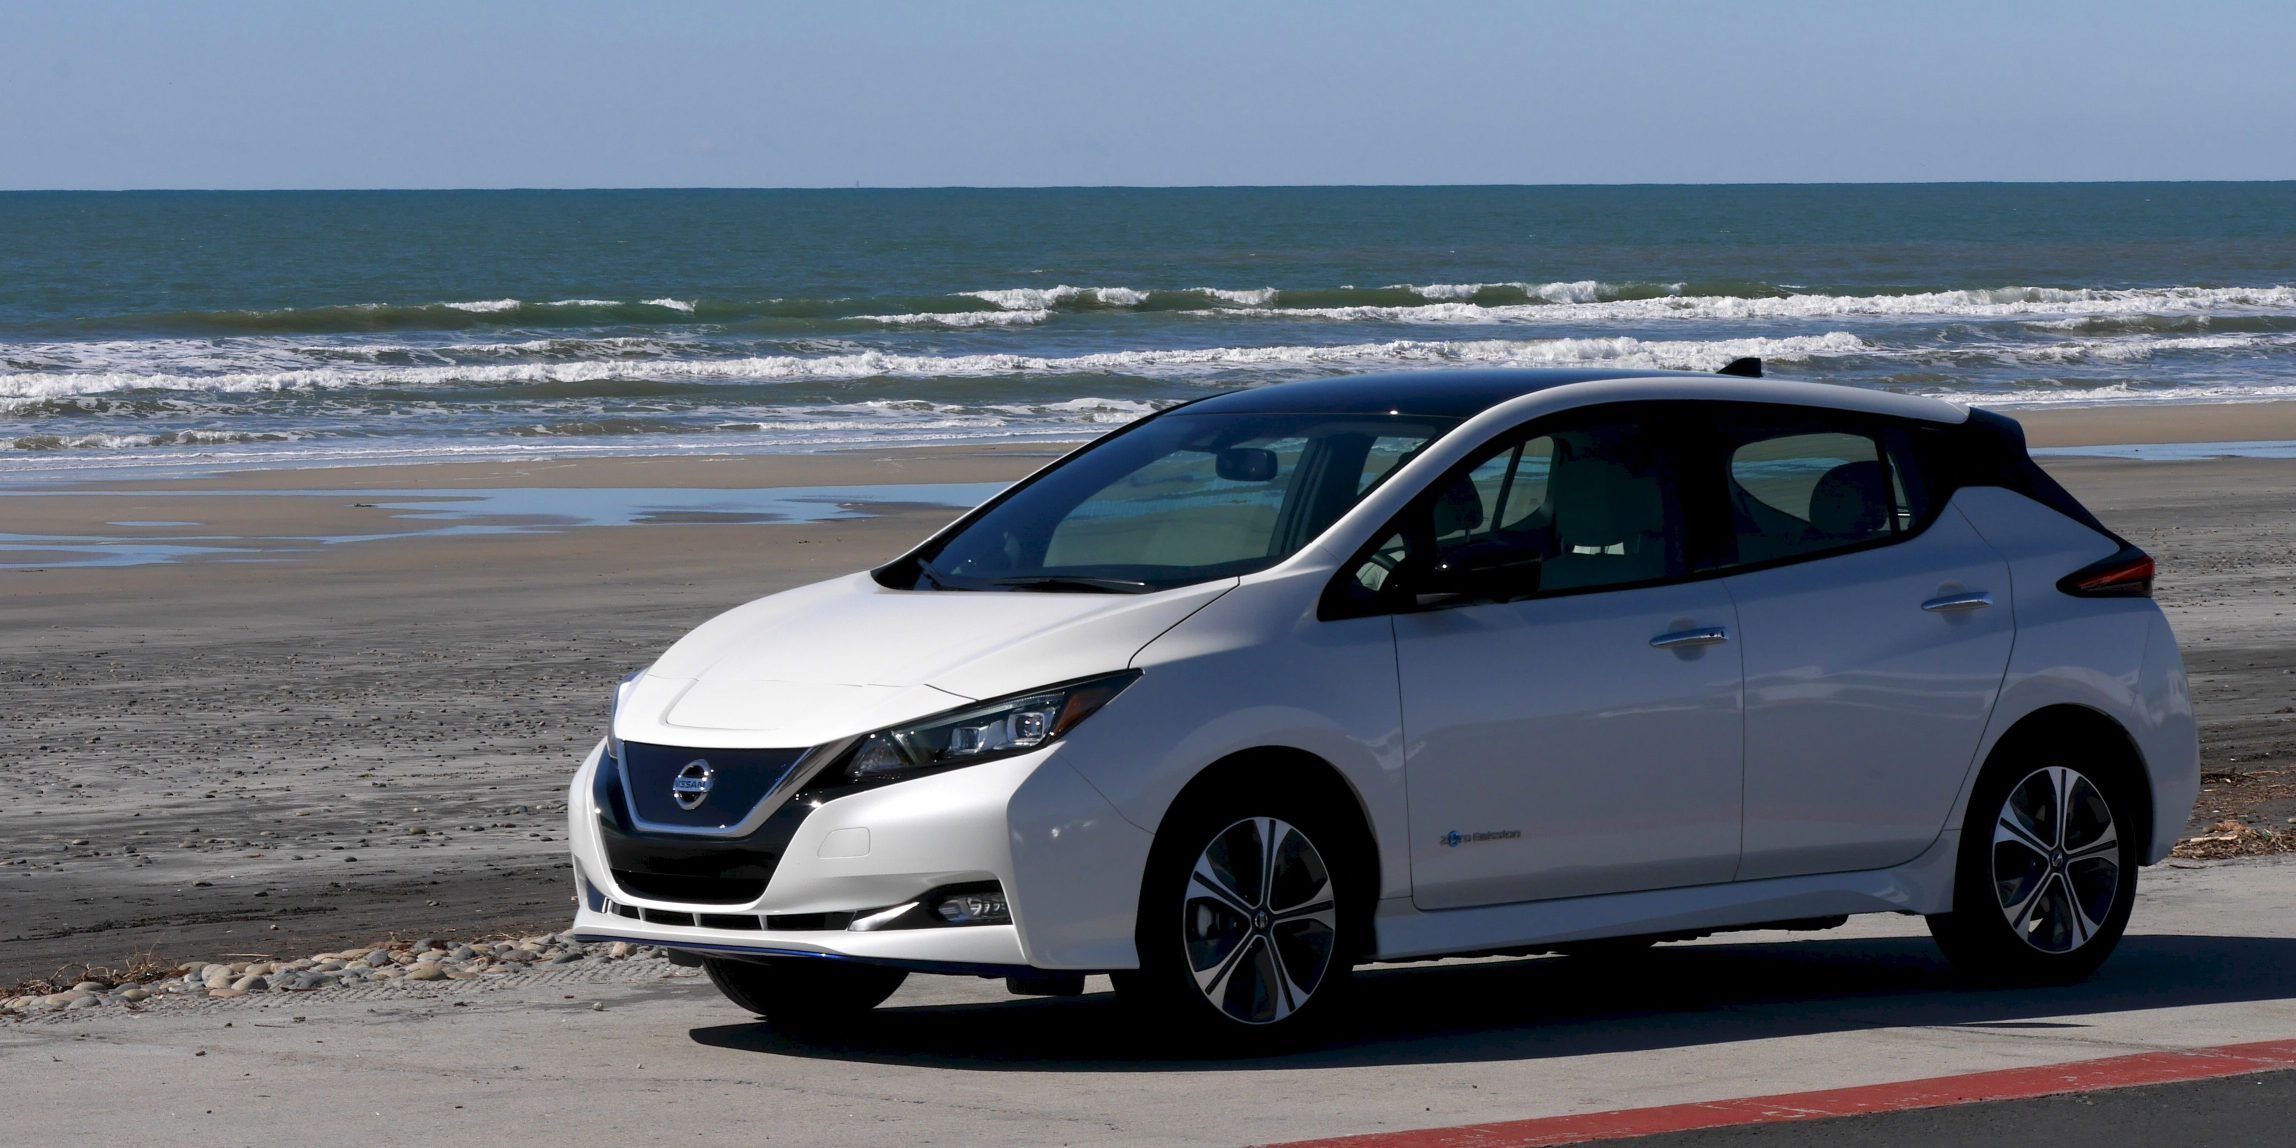 Nissan says its Leaf batteries will outlast the car by 10-12 years, looks for reuse solutions